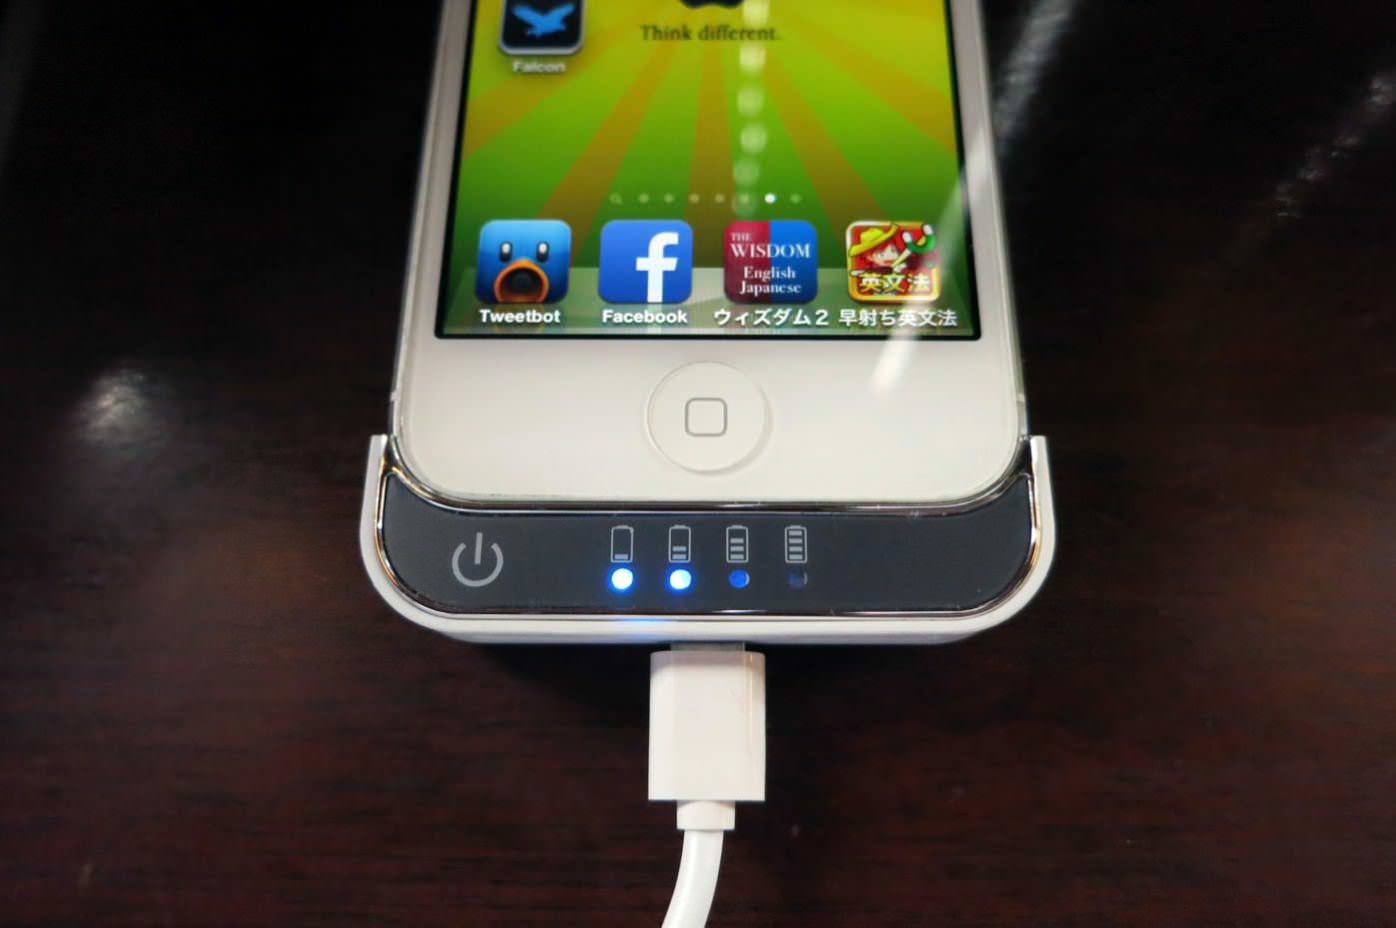 Fu shine power bank for iphone 5 08